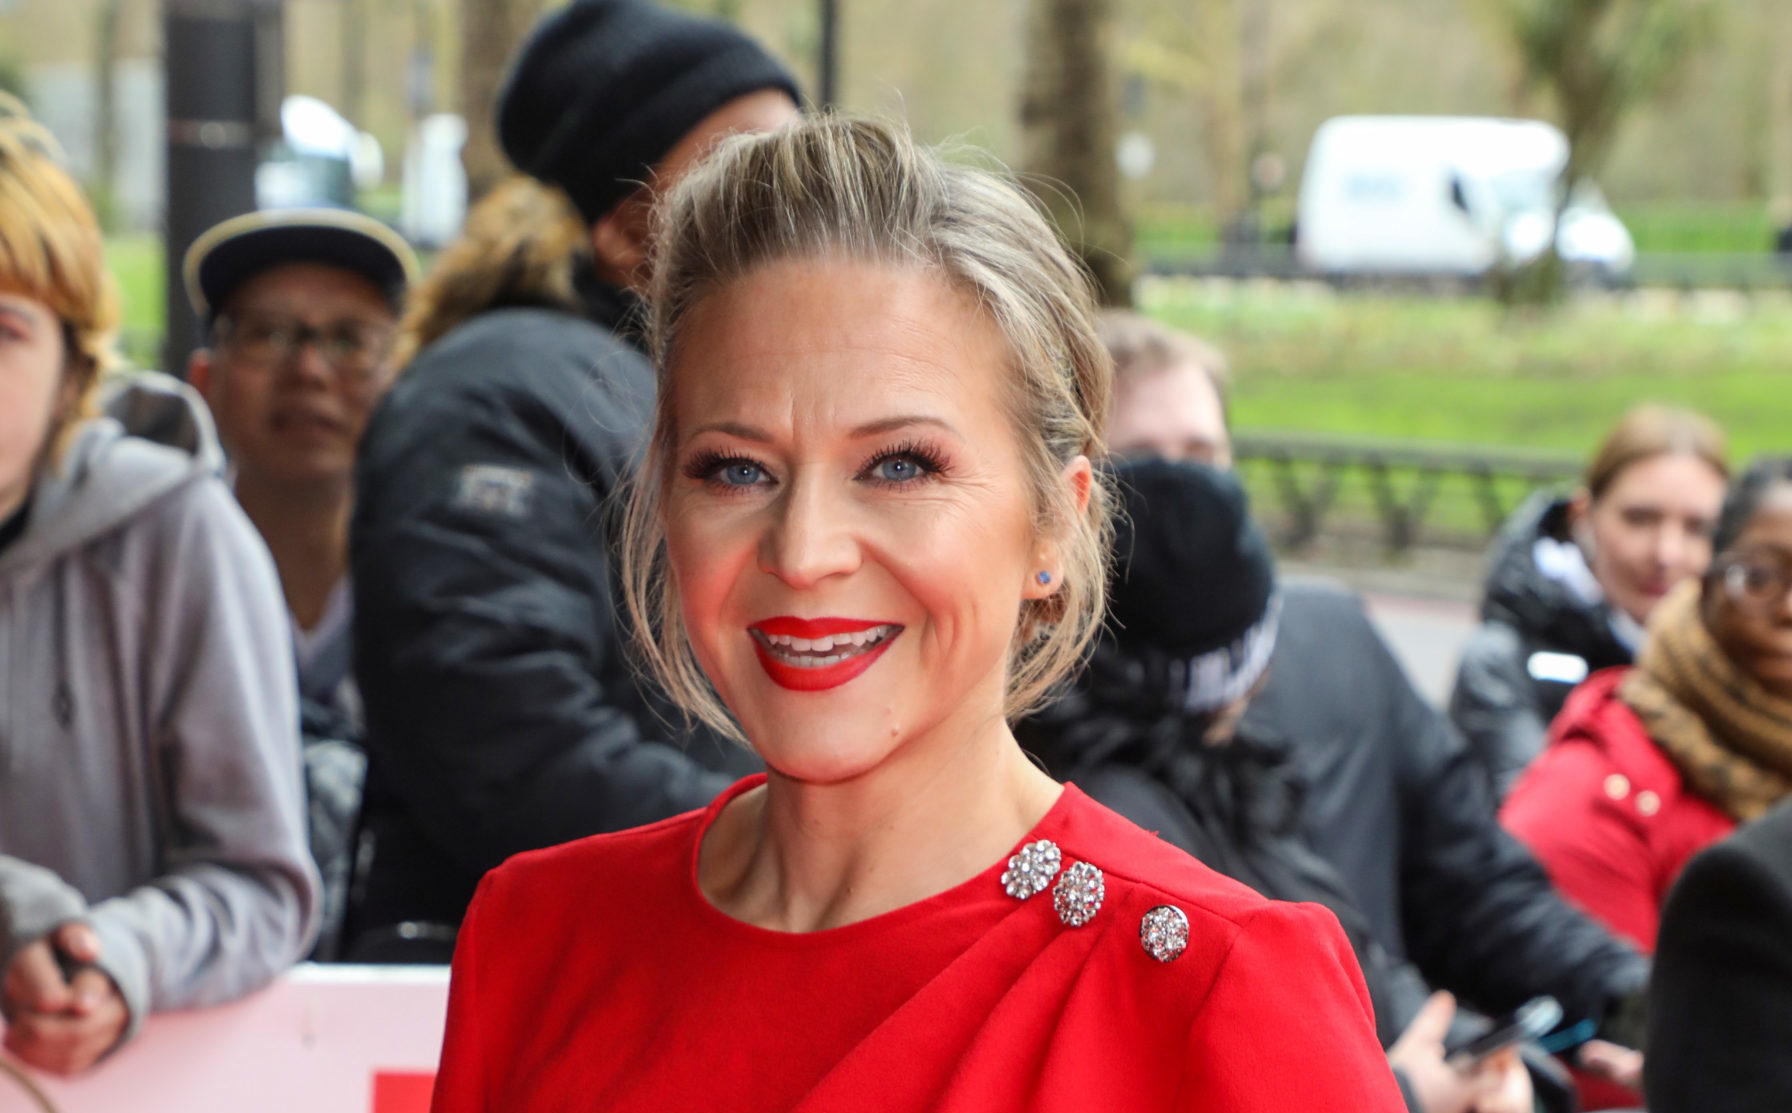 EastEnders stars don't know what's happening in storylines, says Kellie Bright